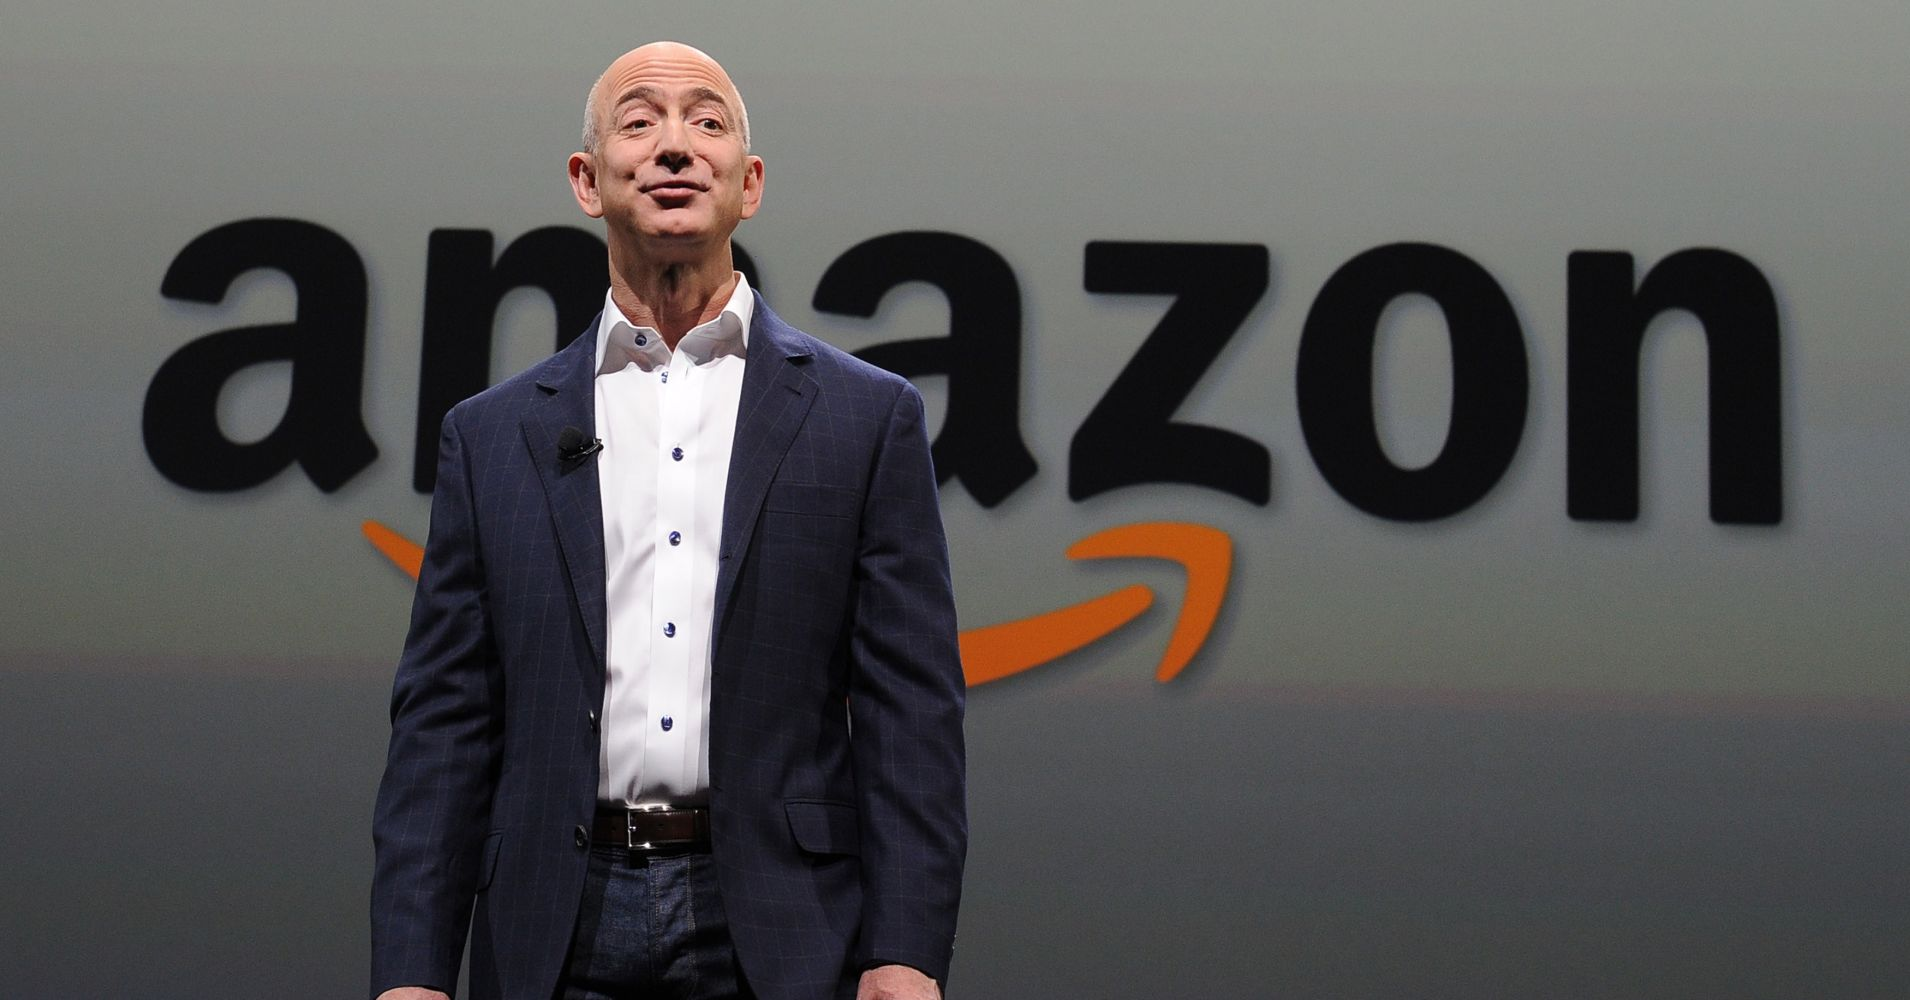 Jeff Bezos, CEO Amazon (gambar dari: https://www.adirondackdailyenterprise.com/news/local-news/2019/02/amazon-dumps-nyc-headquarters-and-its-promised-25000-jobs/)